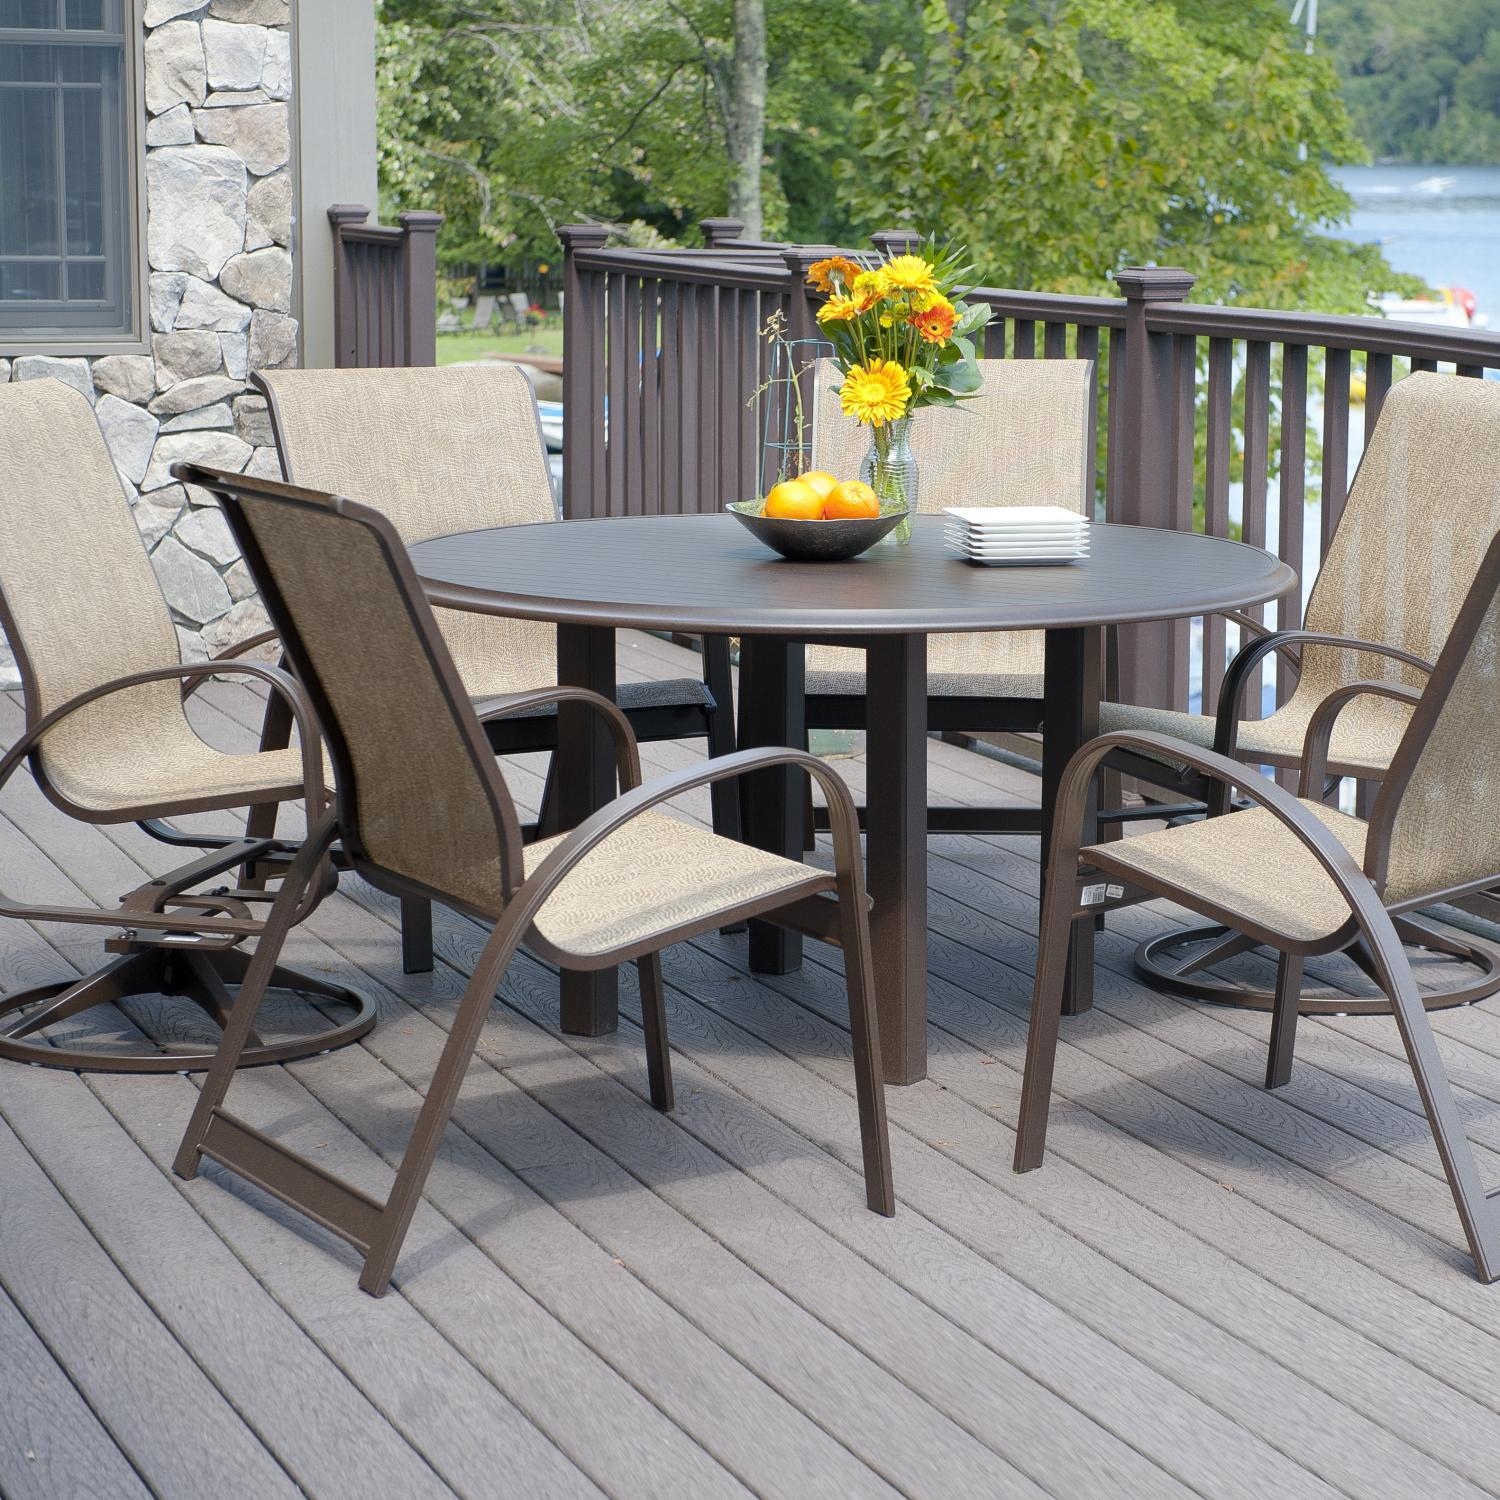 Cheap patio dining sets creativity for Cheap outdoor furniture